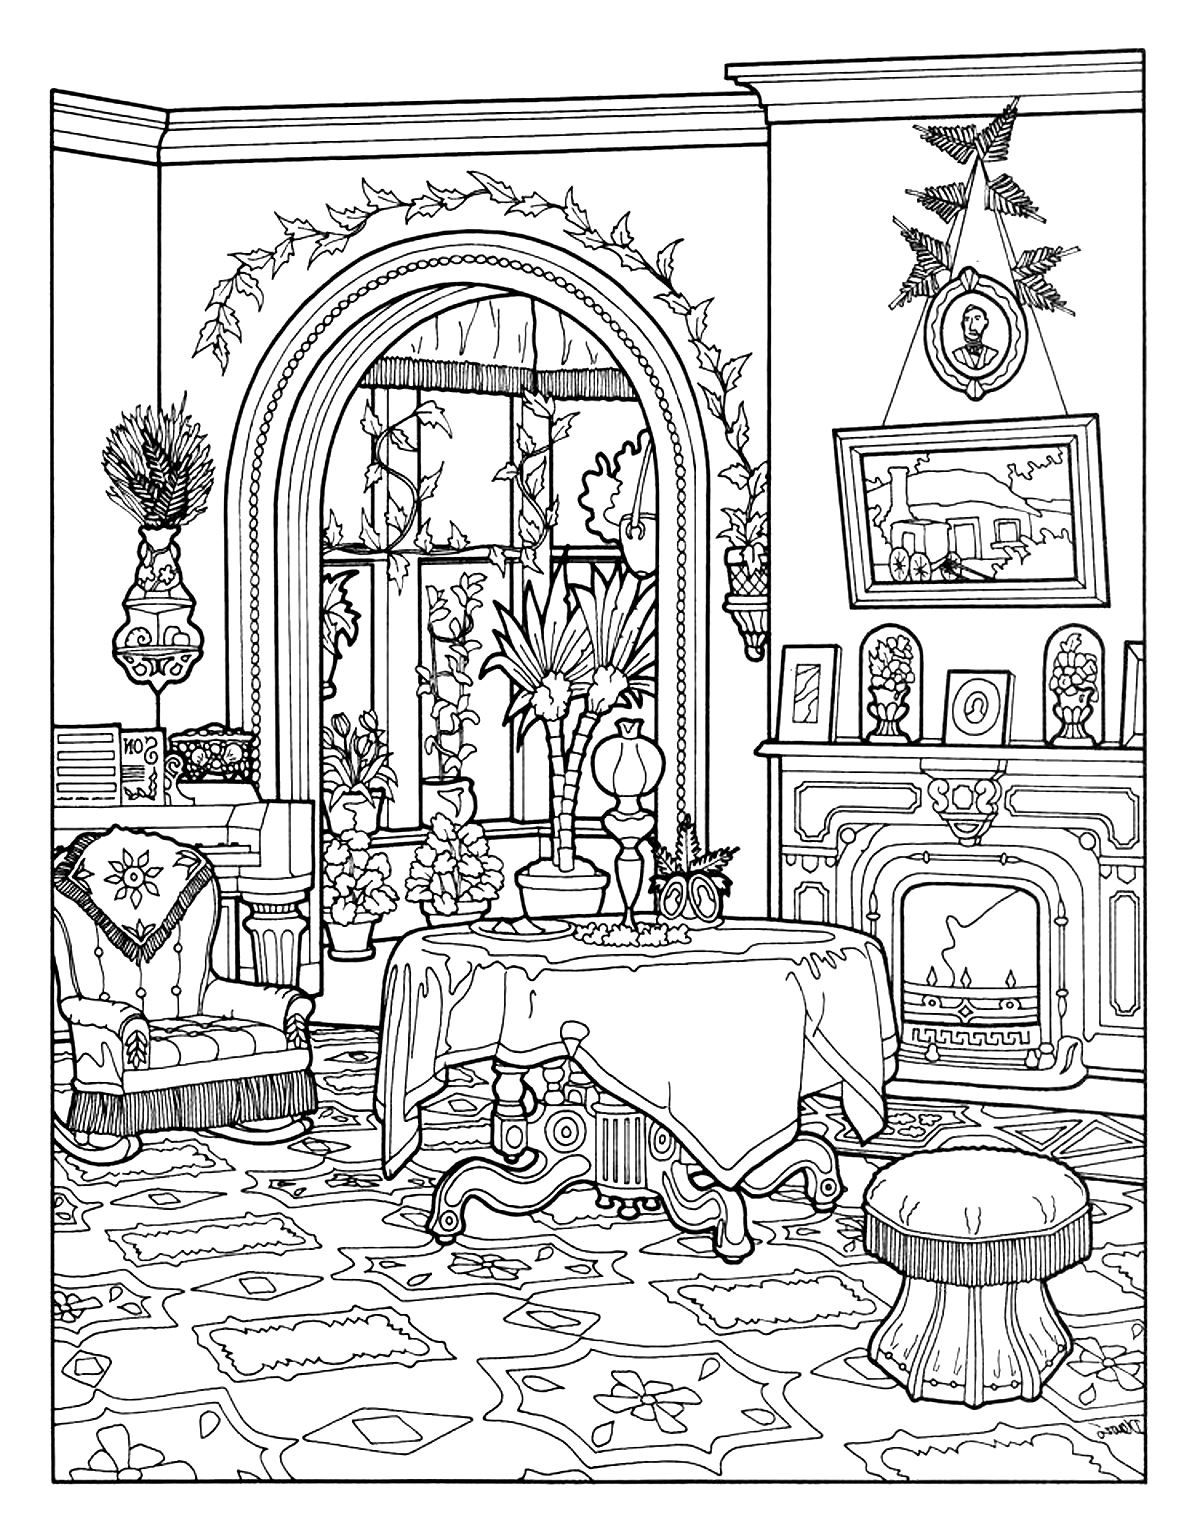 1200x1530 Free Coloring Pages For Adults And Children My Likesmy